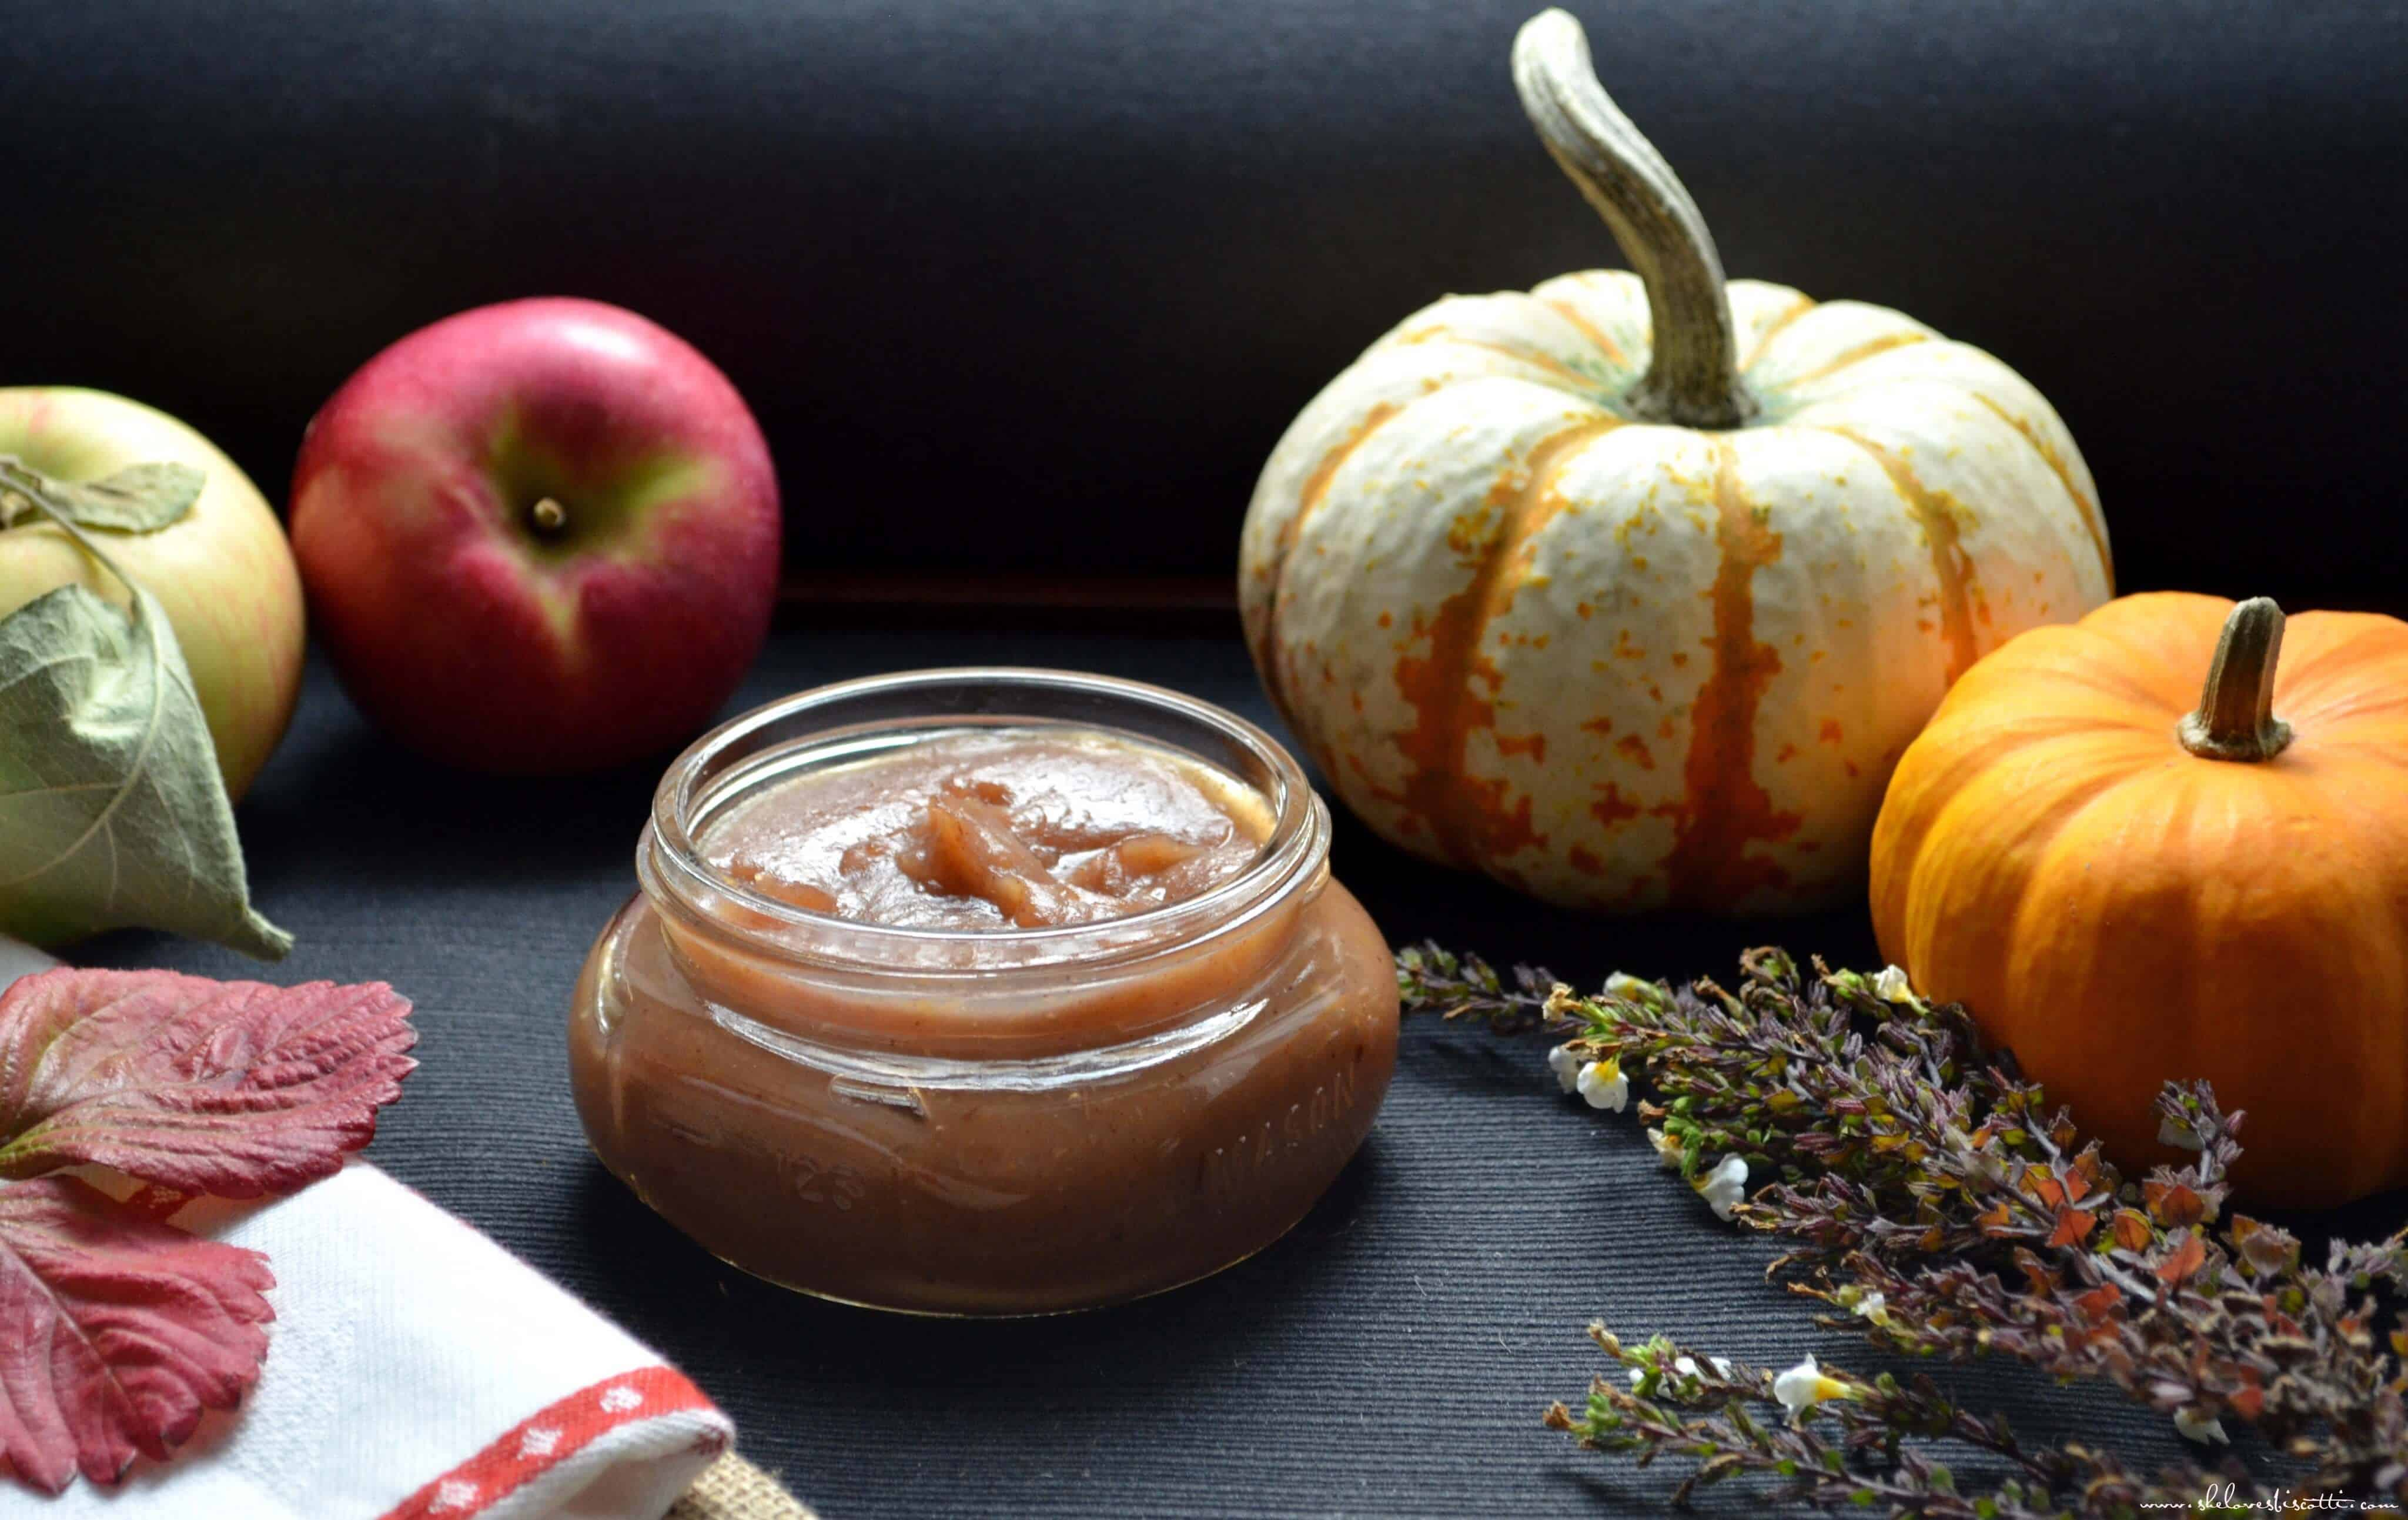 ... simple. I make this recipe for Easy Homemade Spiced Apple Butter. I am